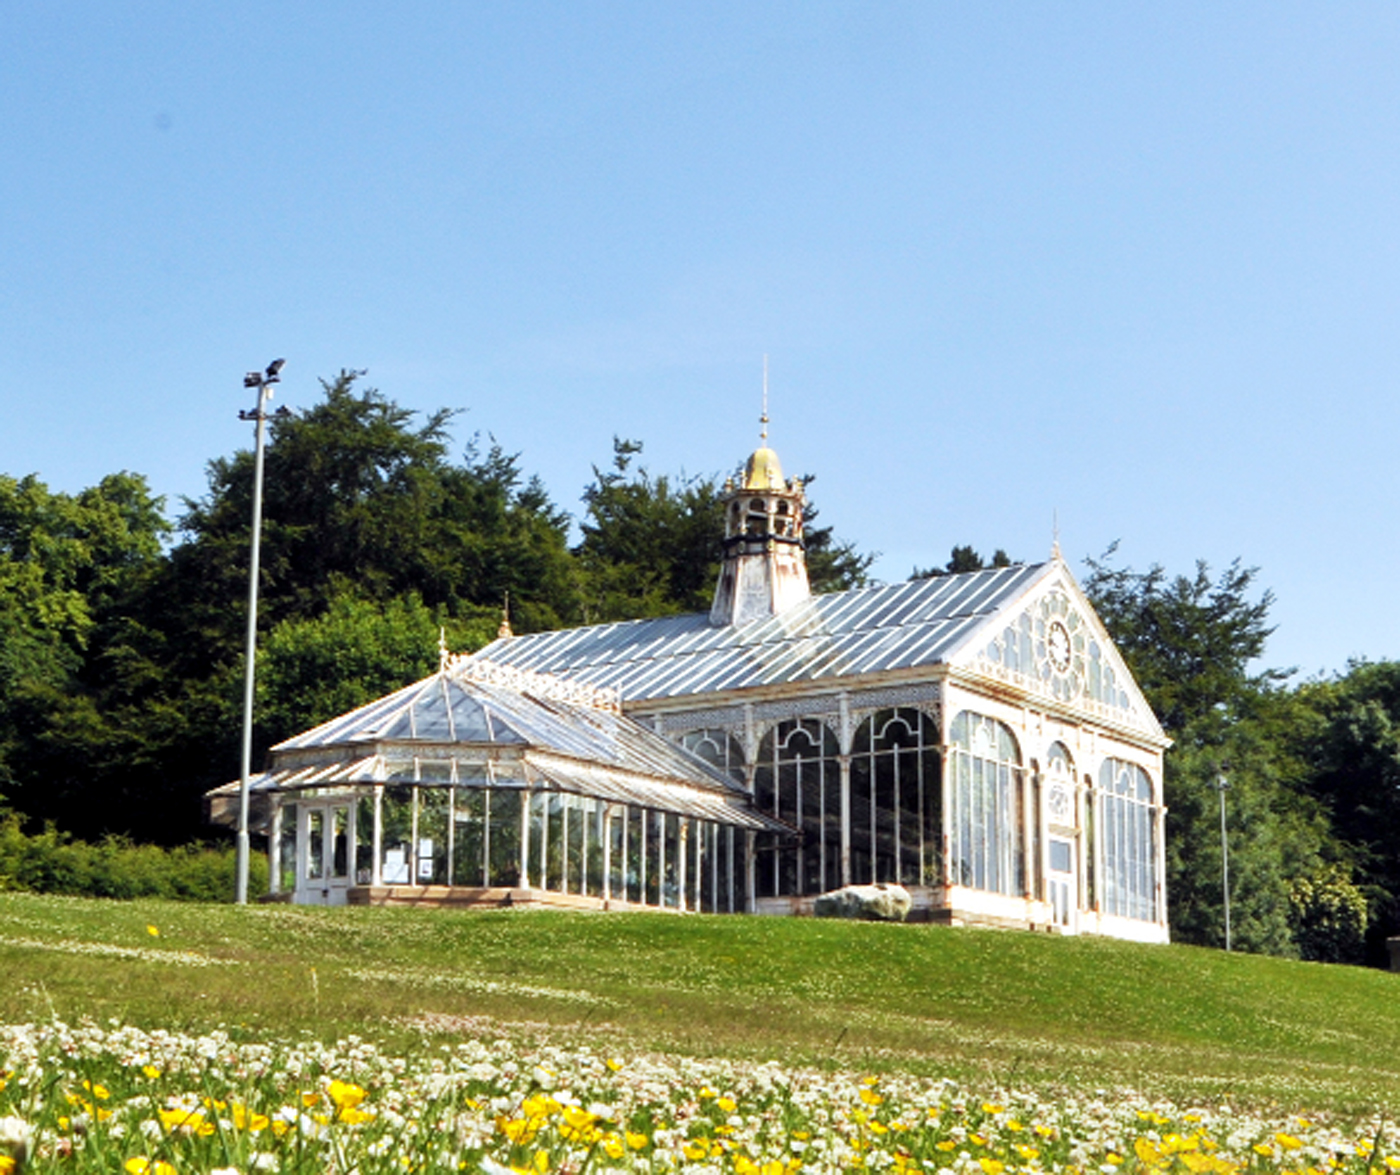 The conservatory at Corporation Park